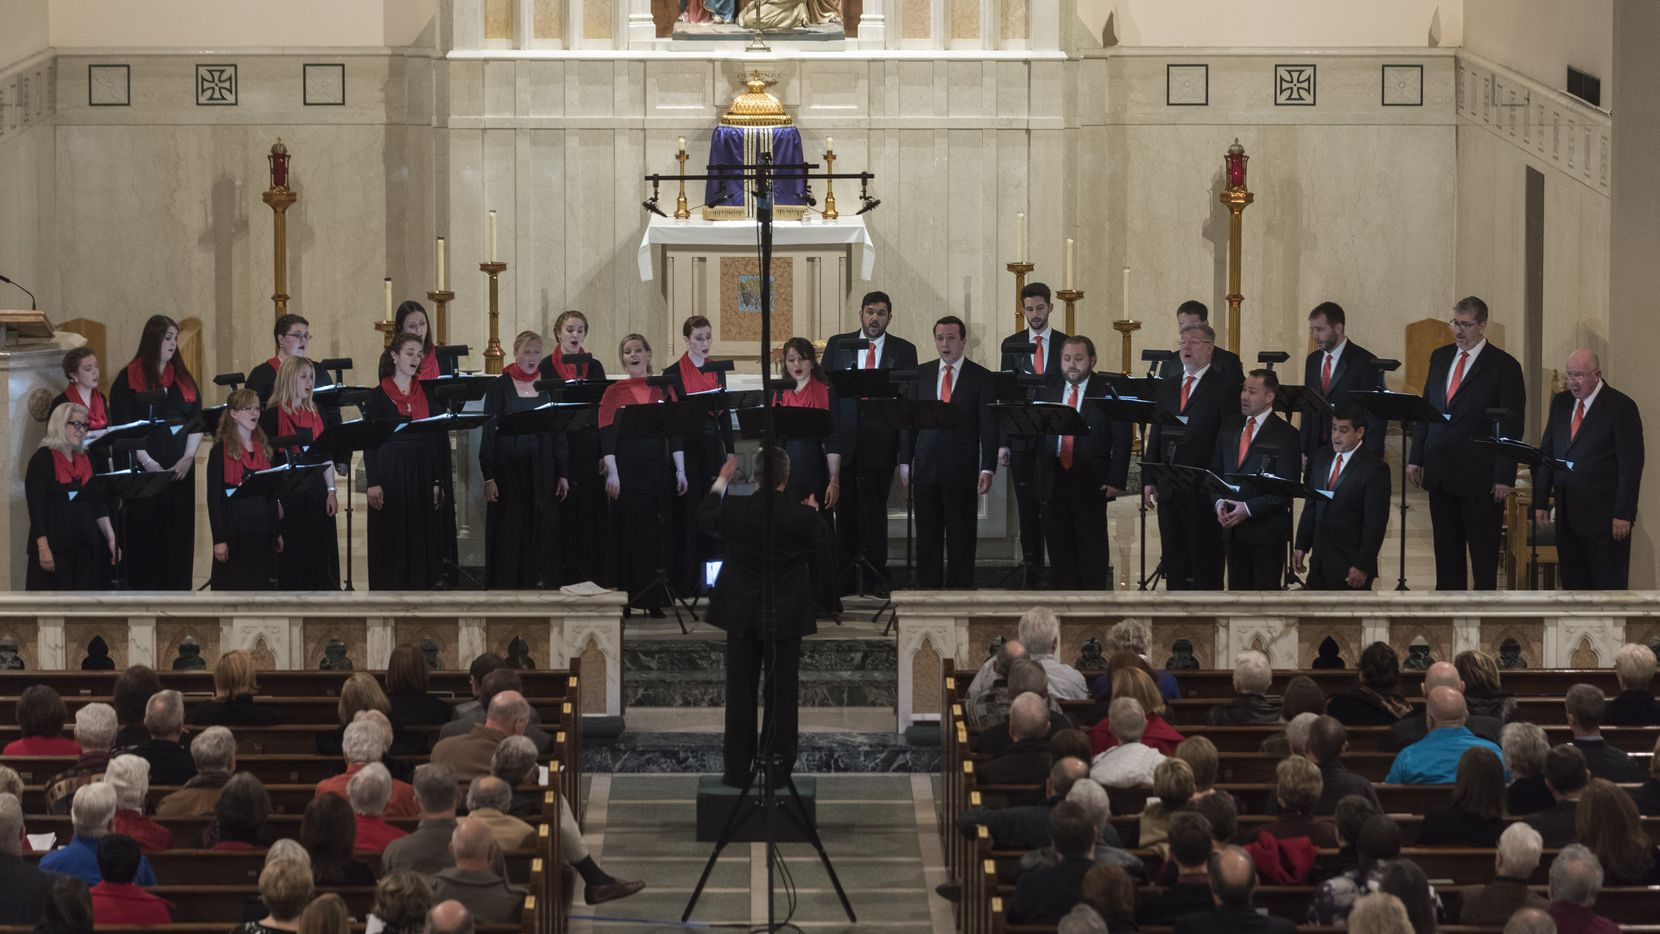 The Orpheus Chamber Singers perform their Christmas concert at St. Thomas Aquinas Catholic Church on Saturday, Dec. 17, 2016.